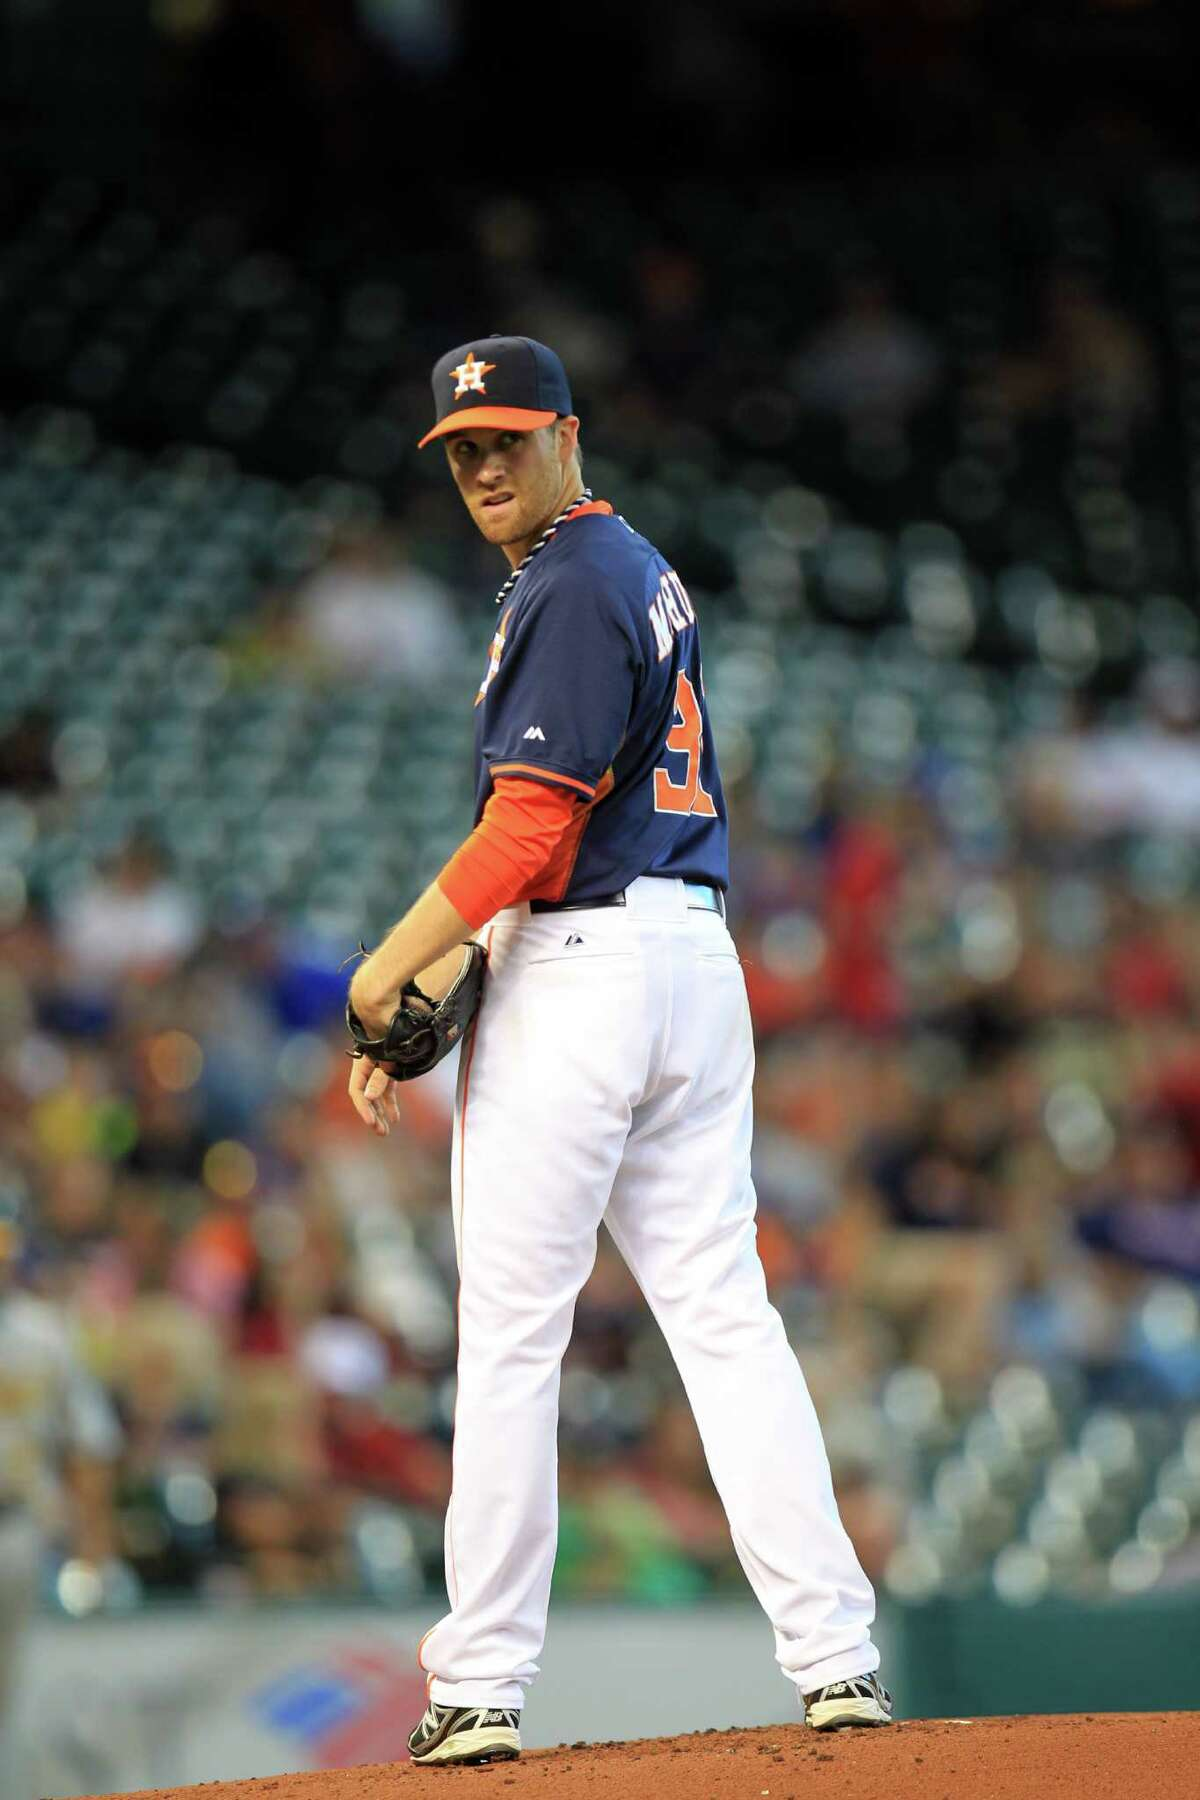 Astros starter Collin McHugh glances at the runner at first as he finds himself in a bases-loaded jam in the first inning. McHugh proceeded to retire 24 of the next 25 batters before running into trouble with two outs in the ninth inning.